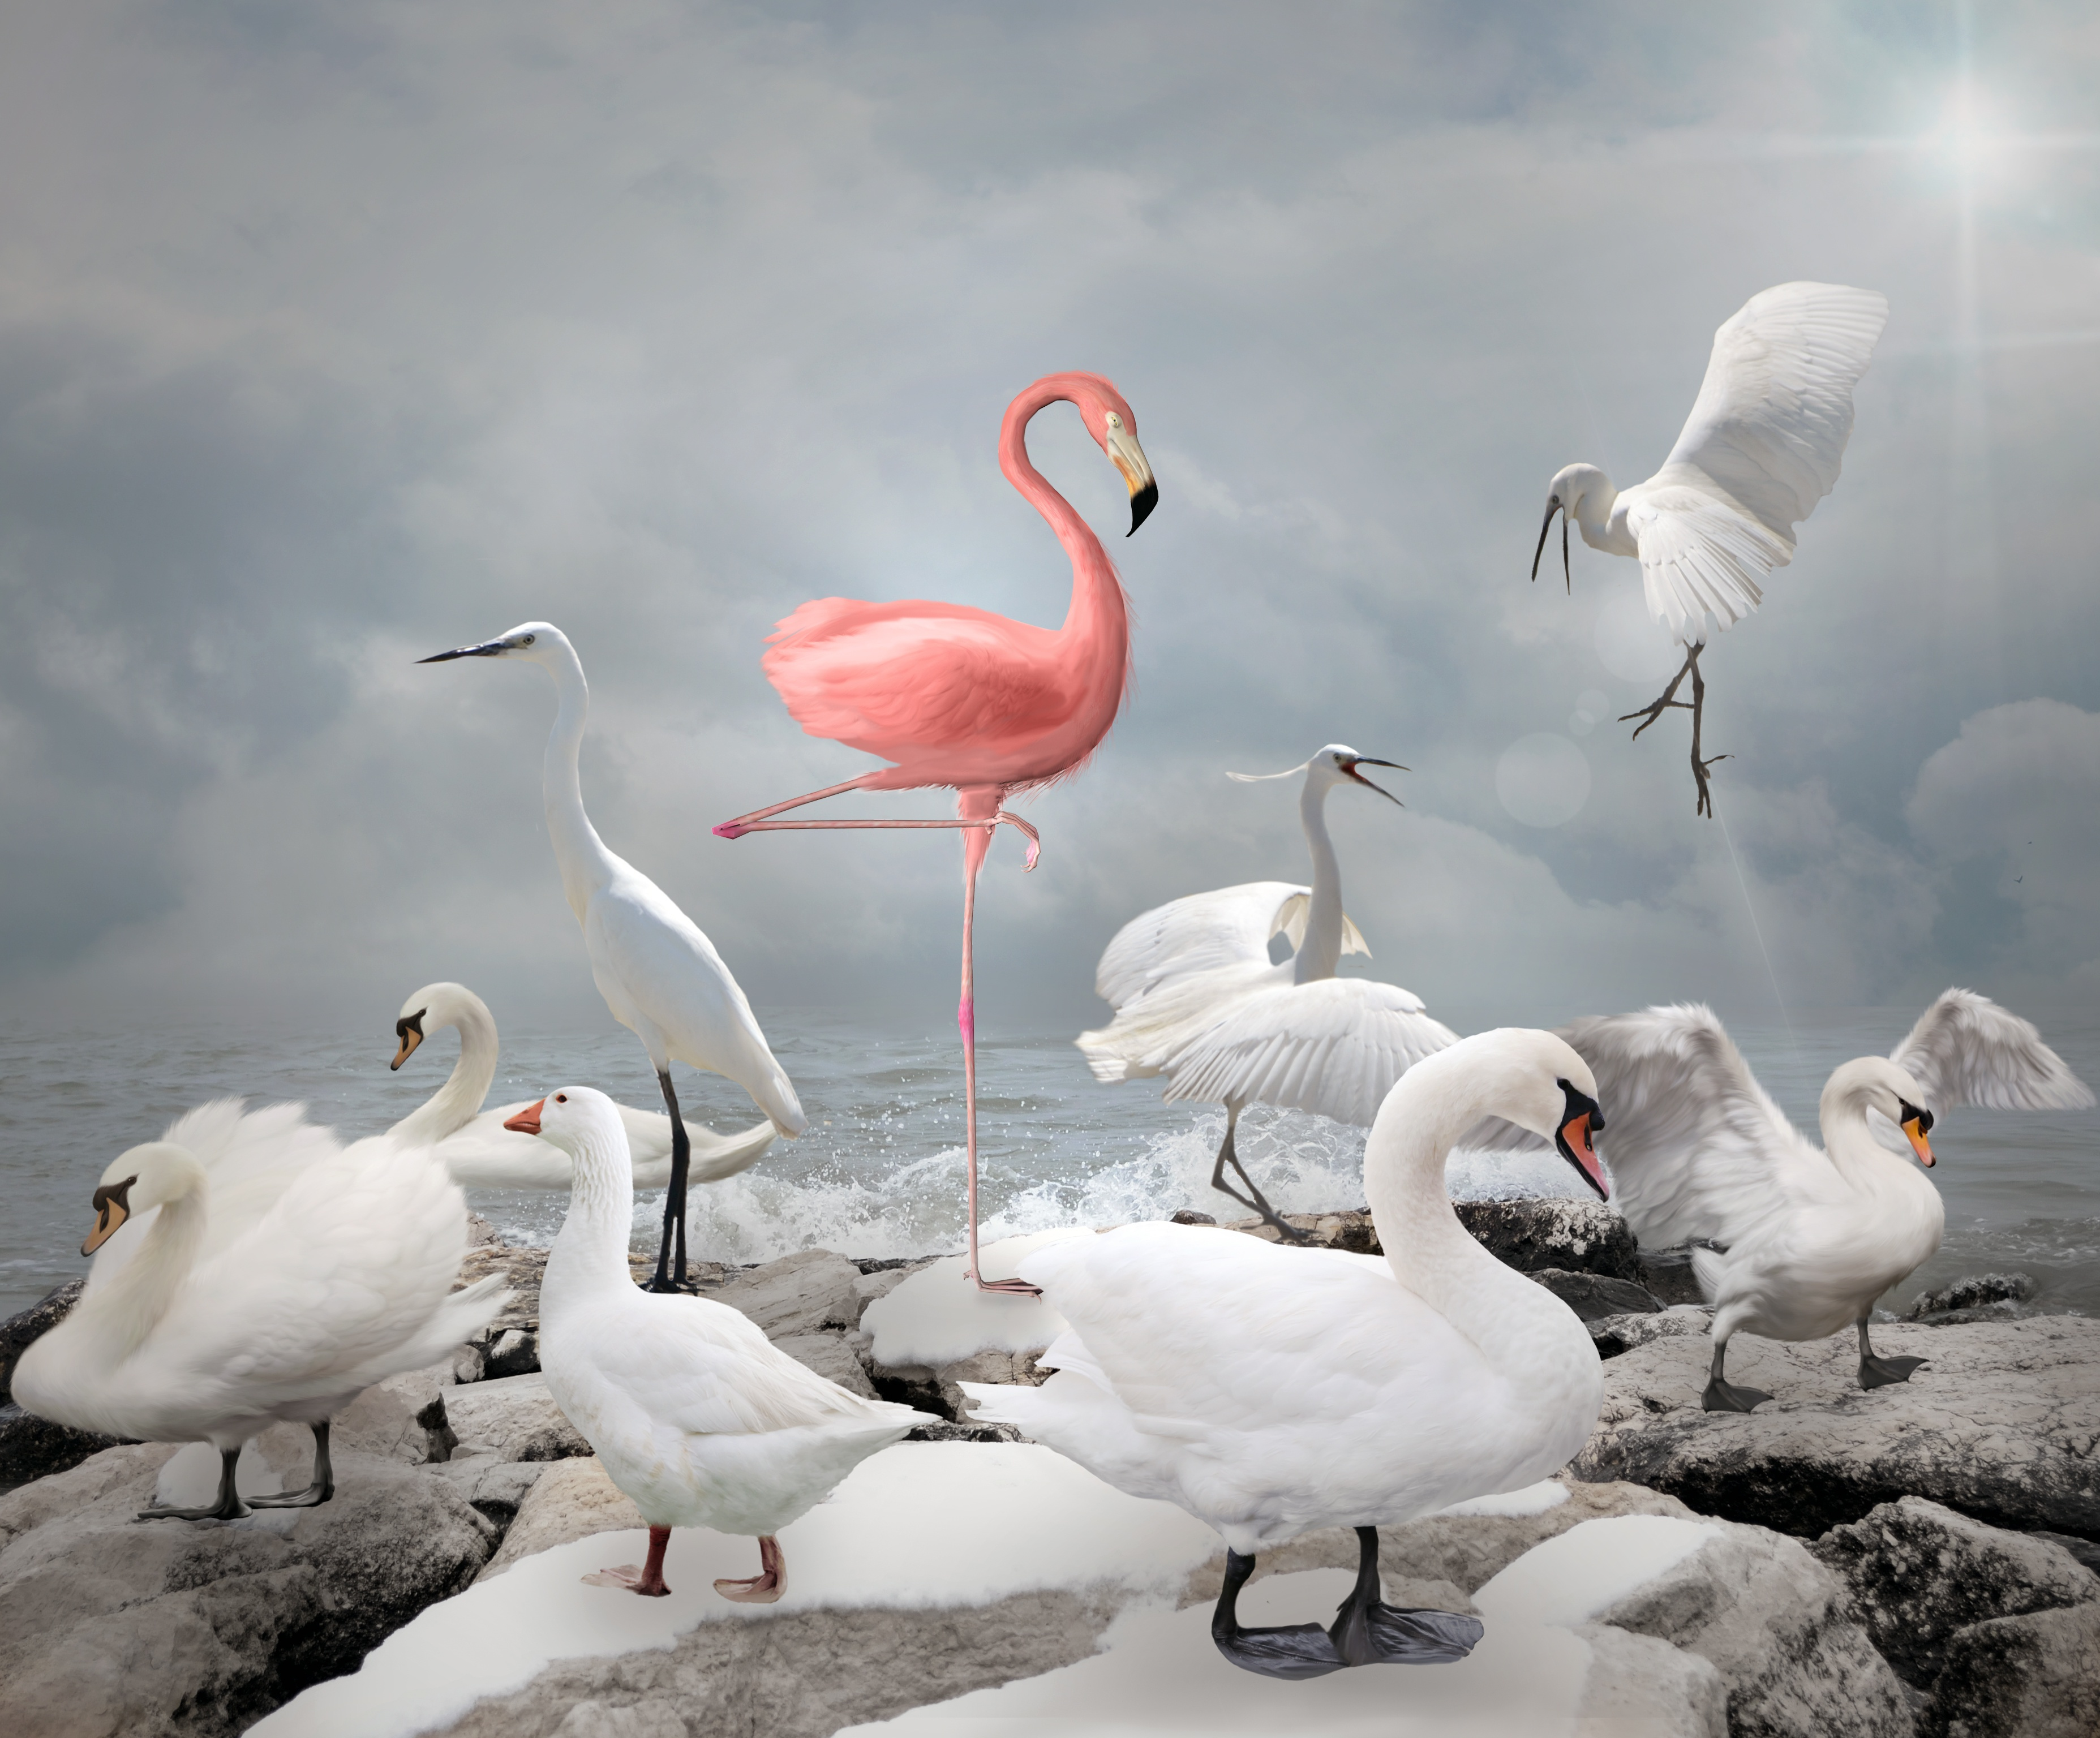 Stand out from your competition like a flamingo among seagulls, with a bold brand promise.